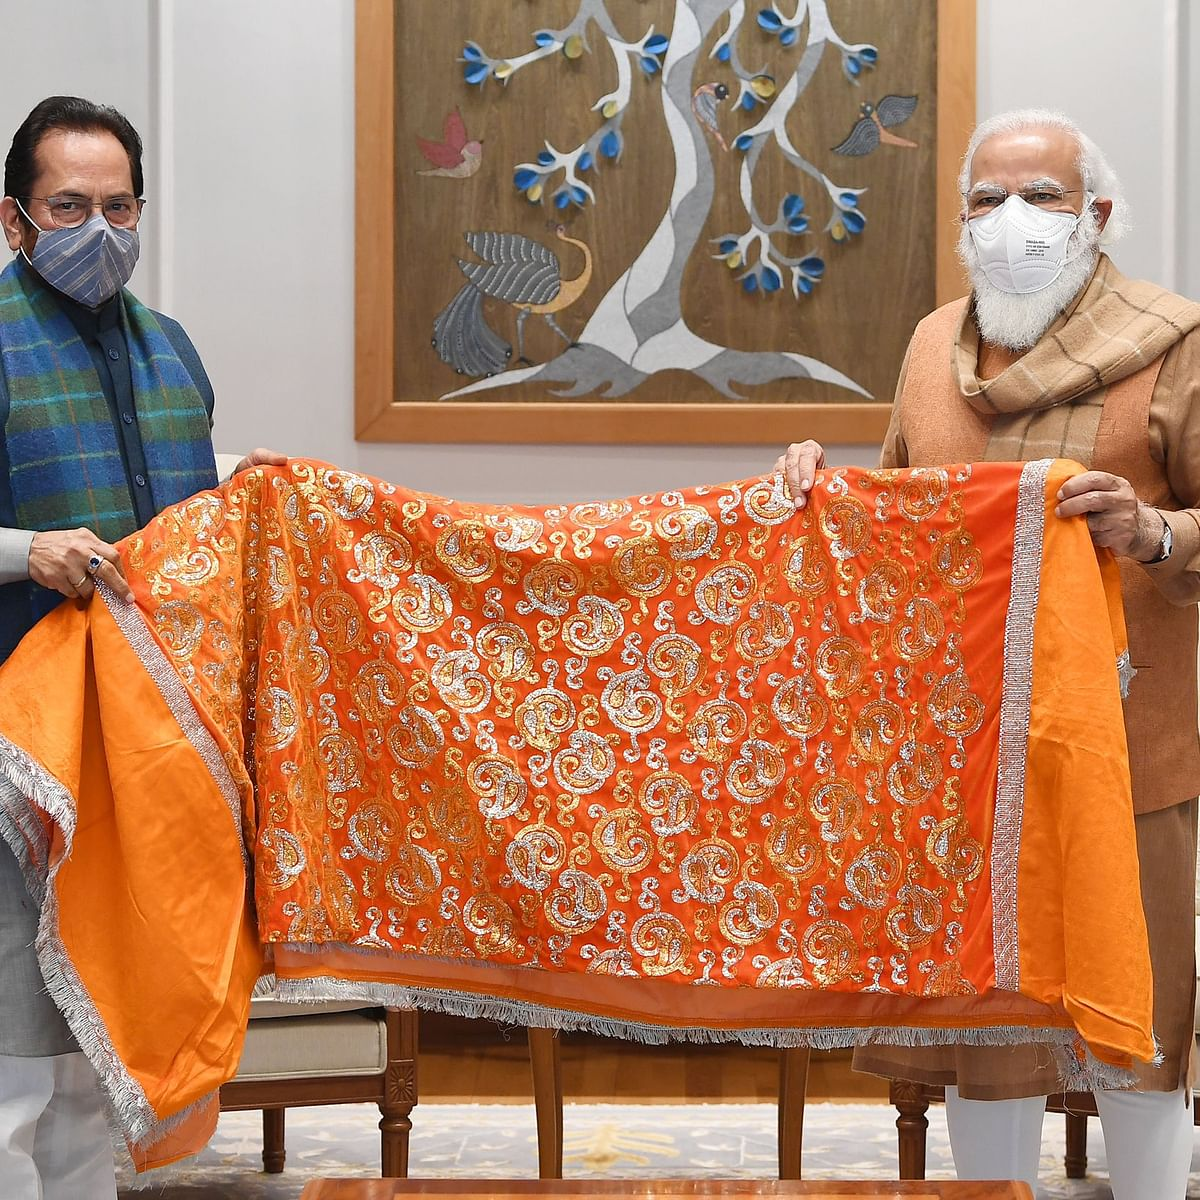 PM Modi hands over 'chadar' to be offered at Ajmer Sharif Dargah